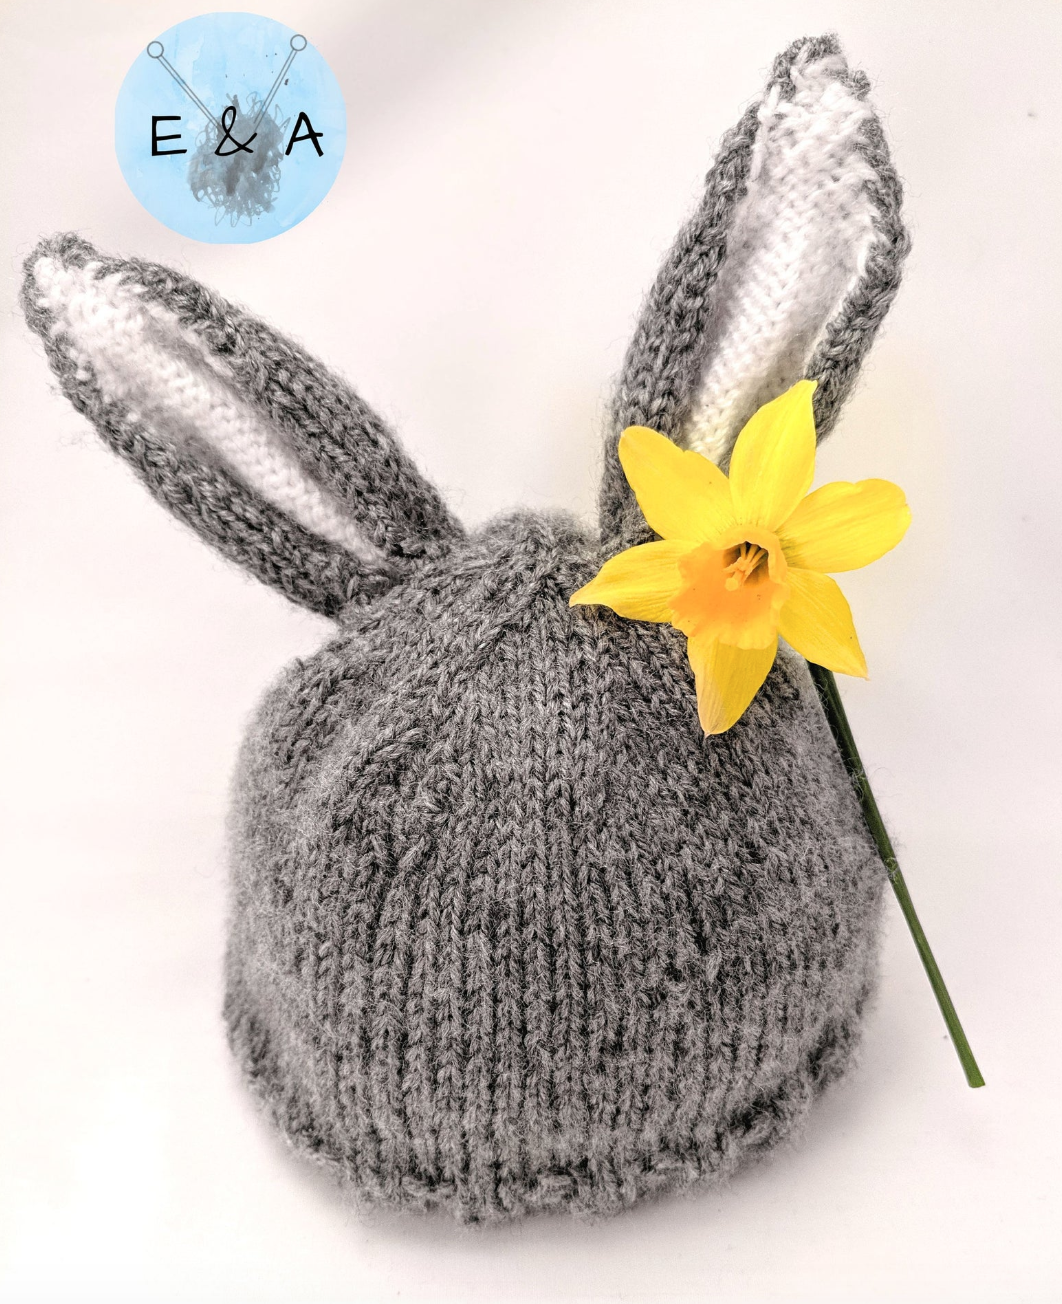 Hand-knitted rabbit hat, Etsy